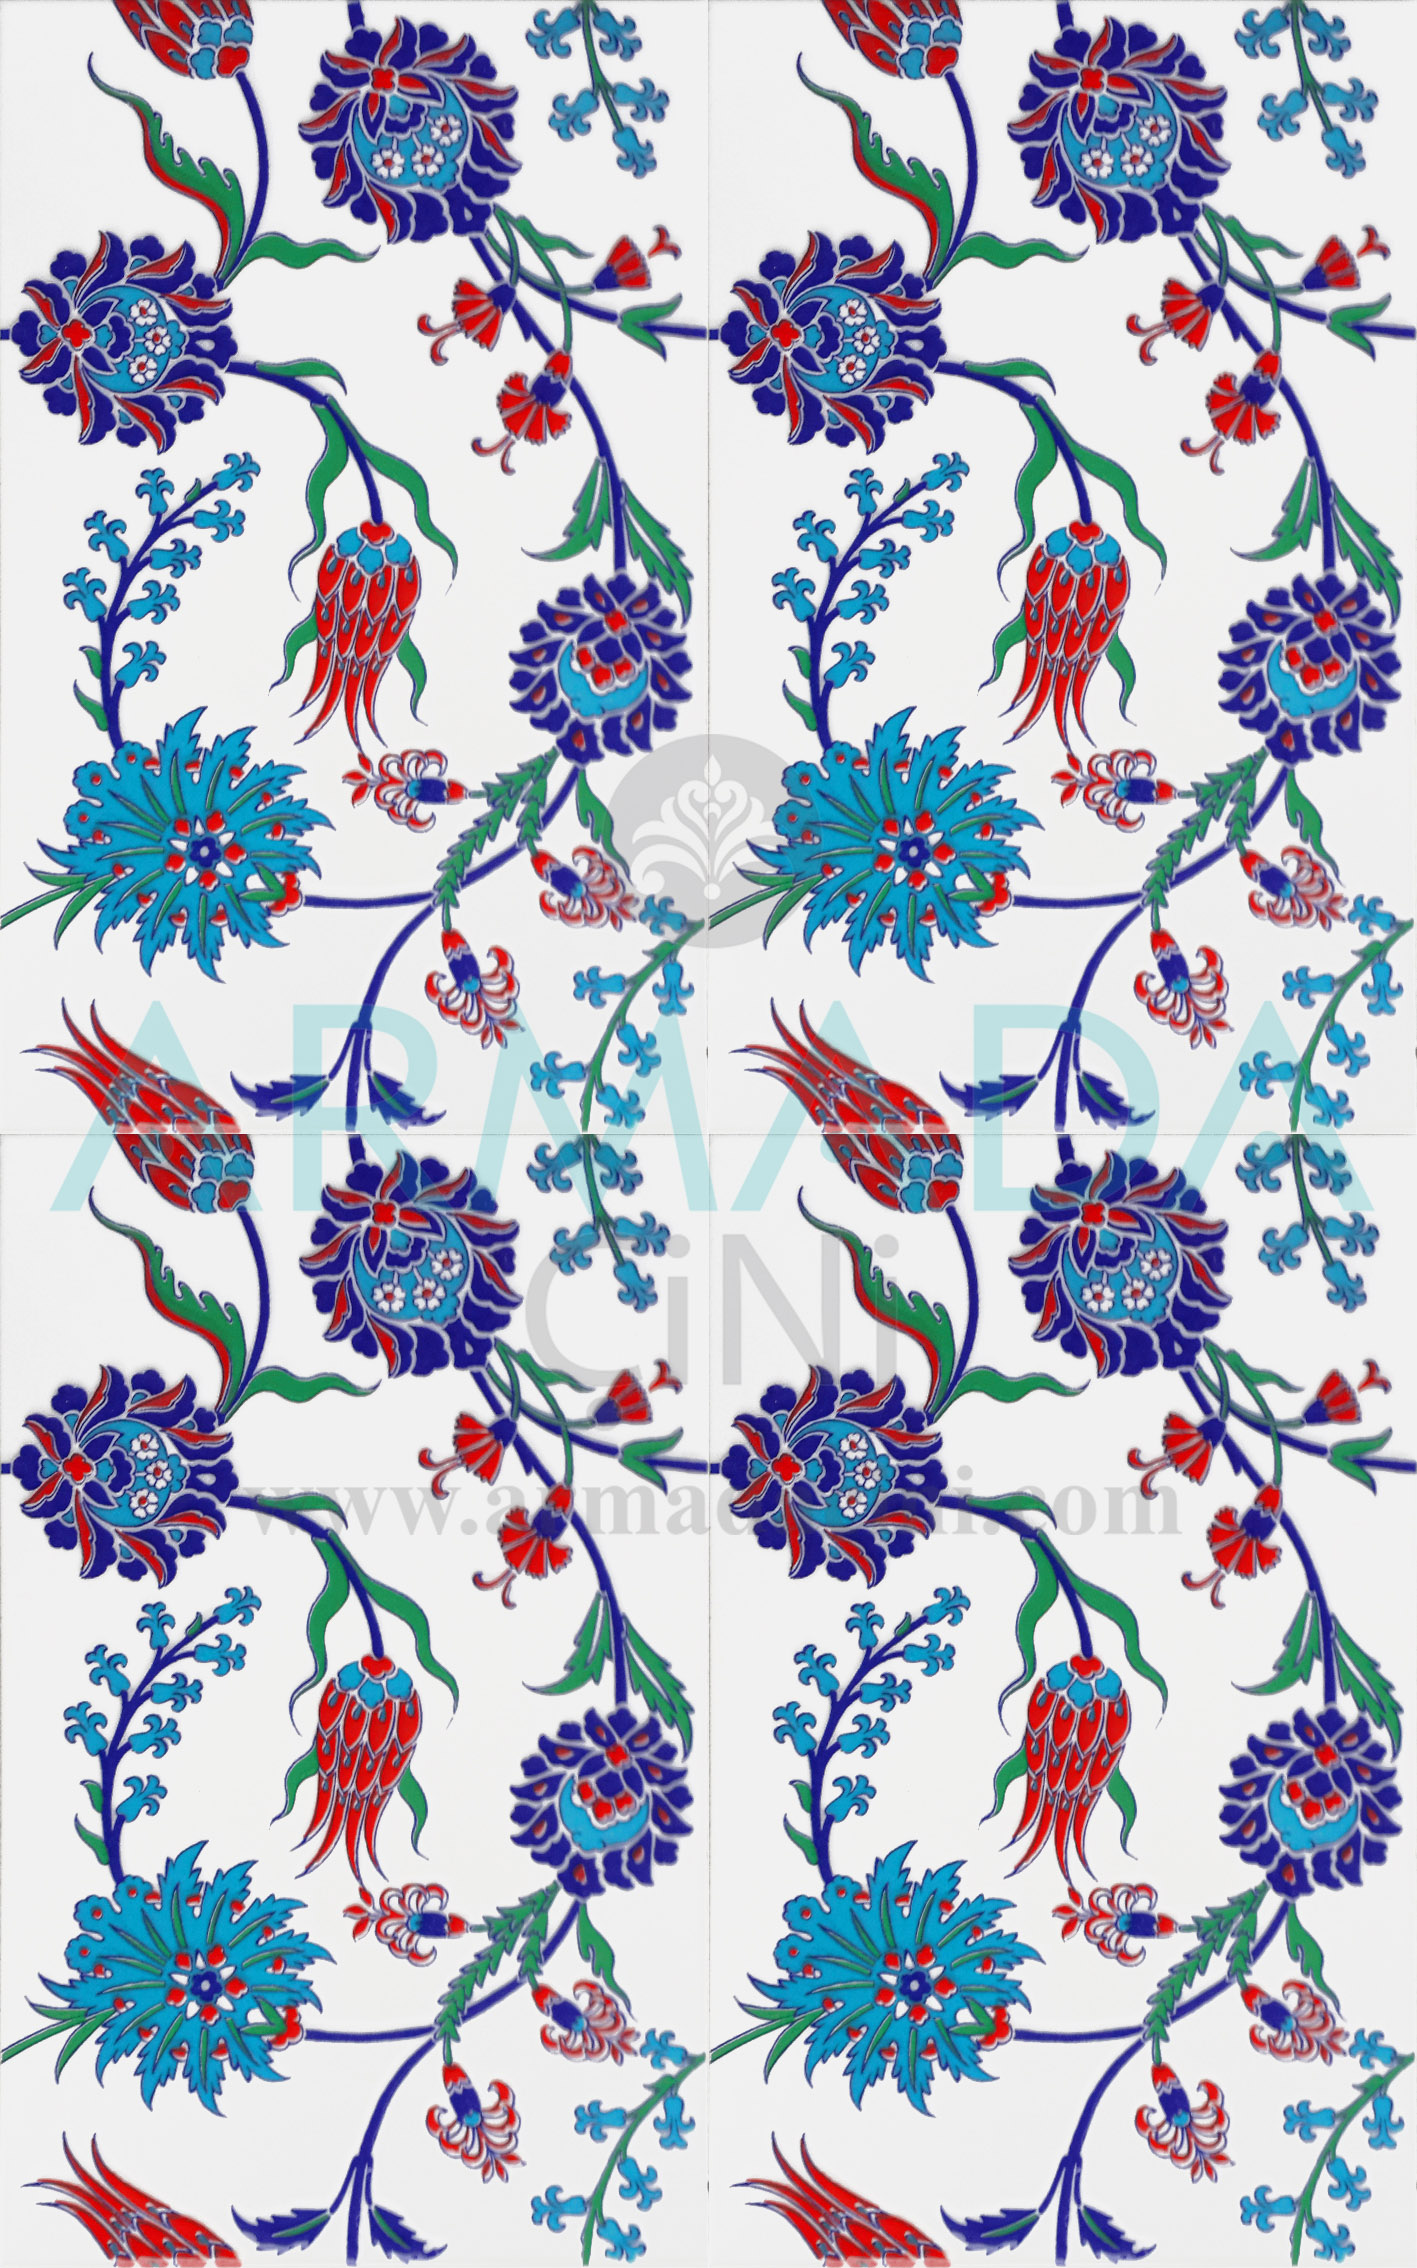 25x40 SP-405 Patterned Iznik Tile Tile Model (Tulip-Clove Pattern)